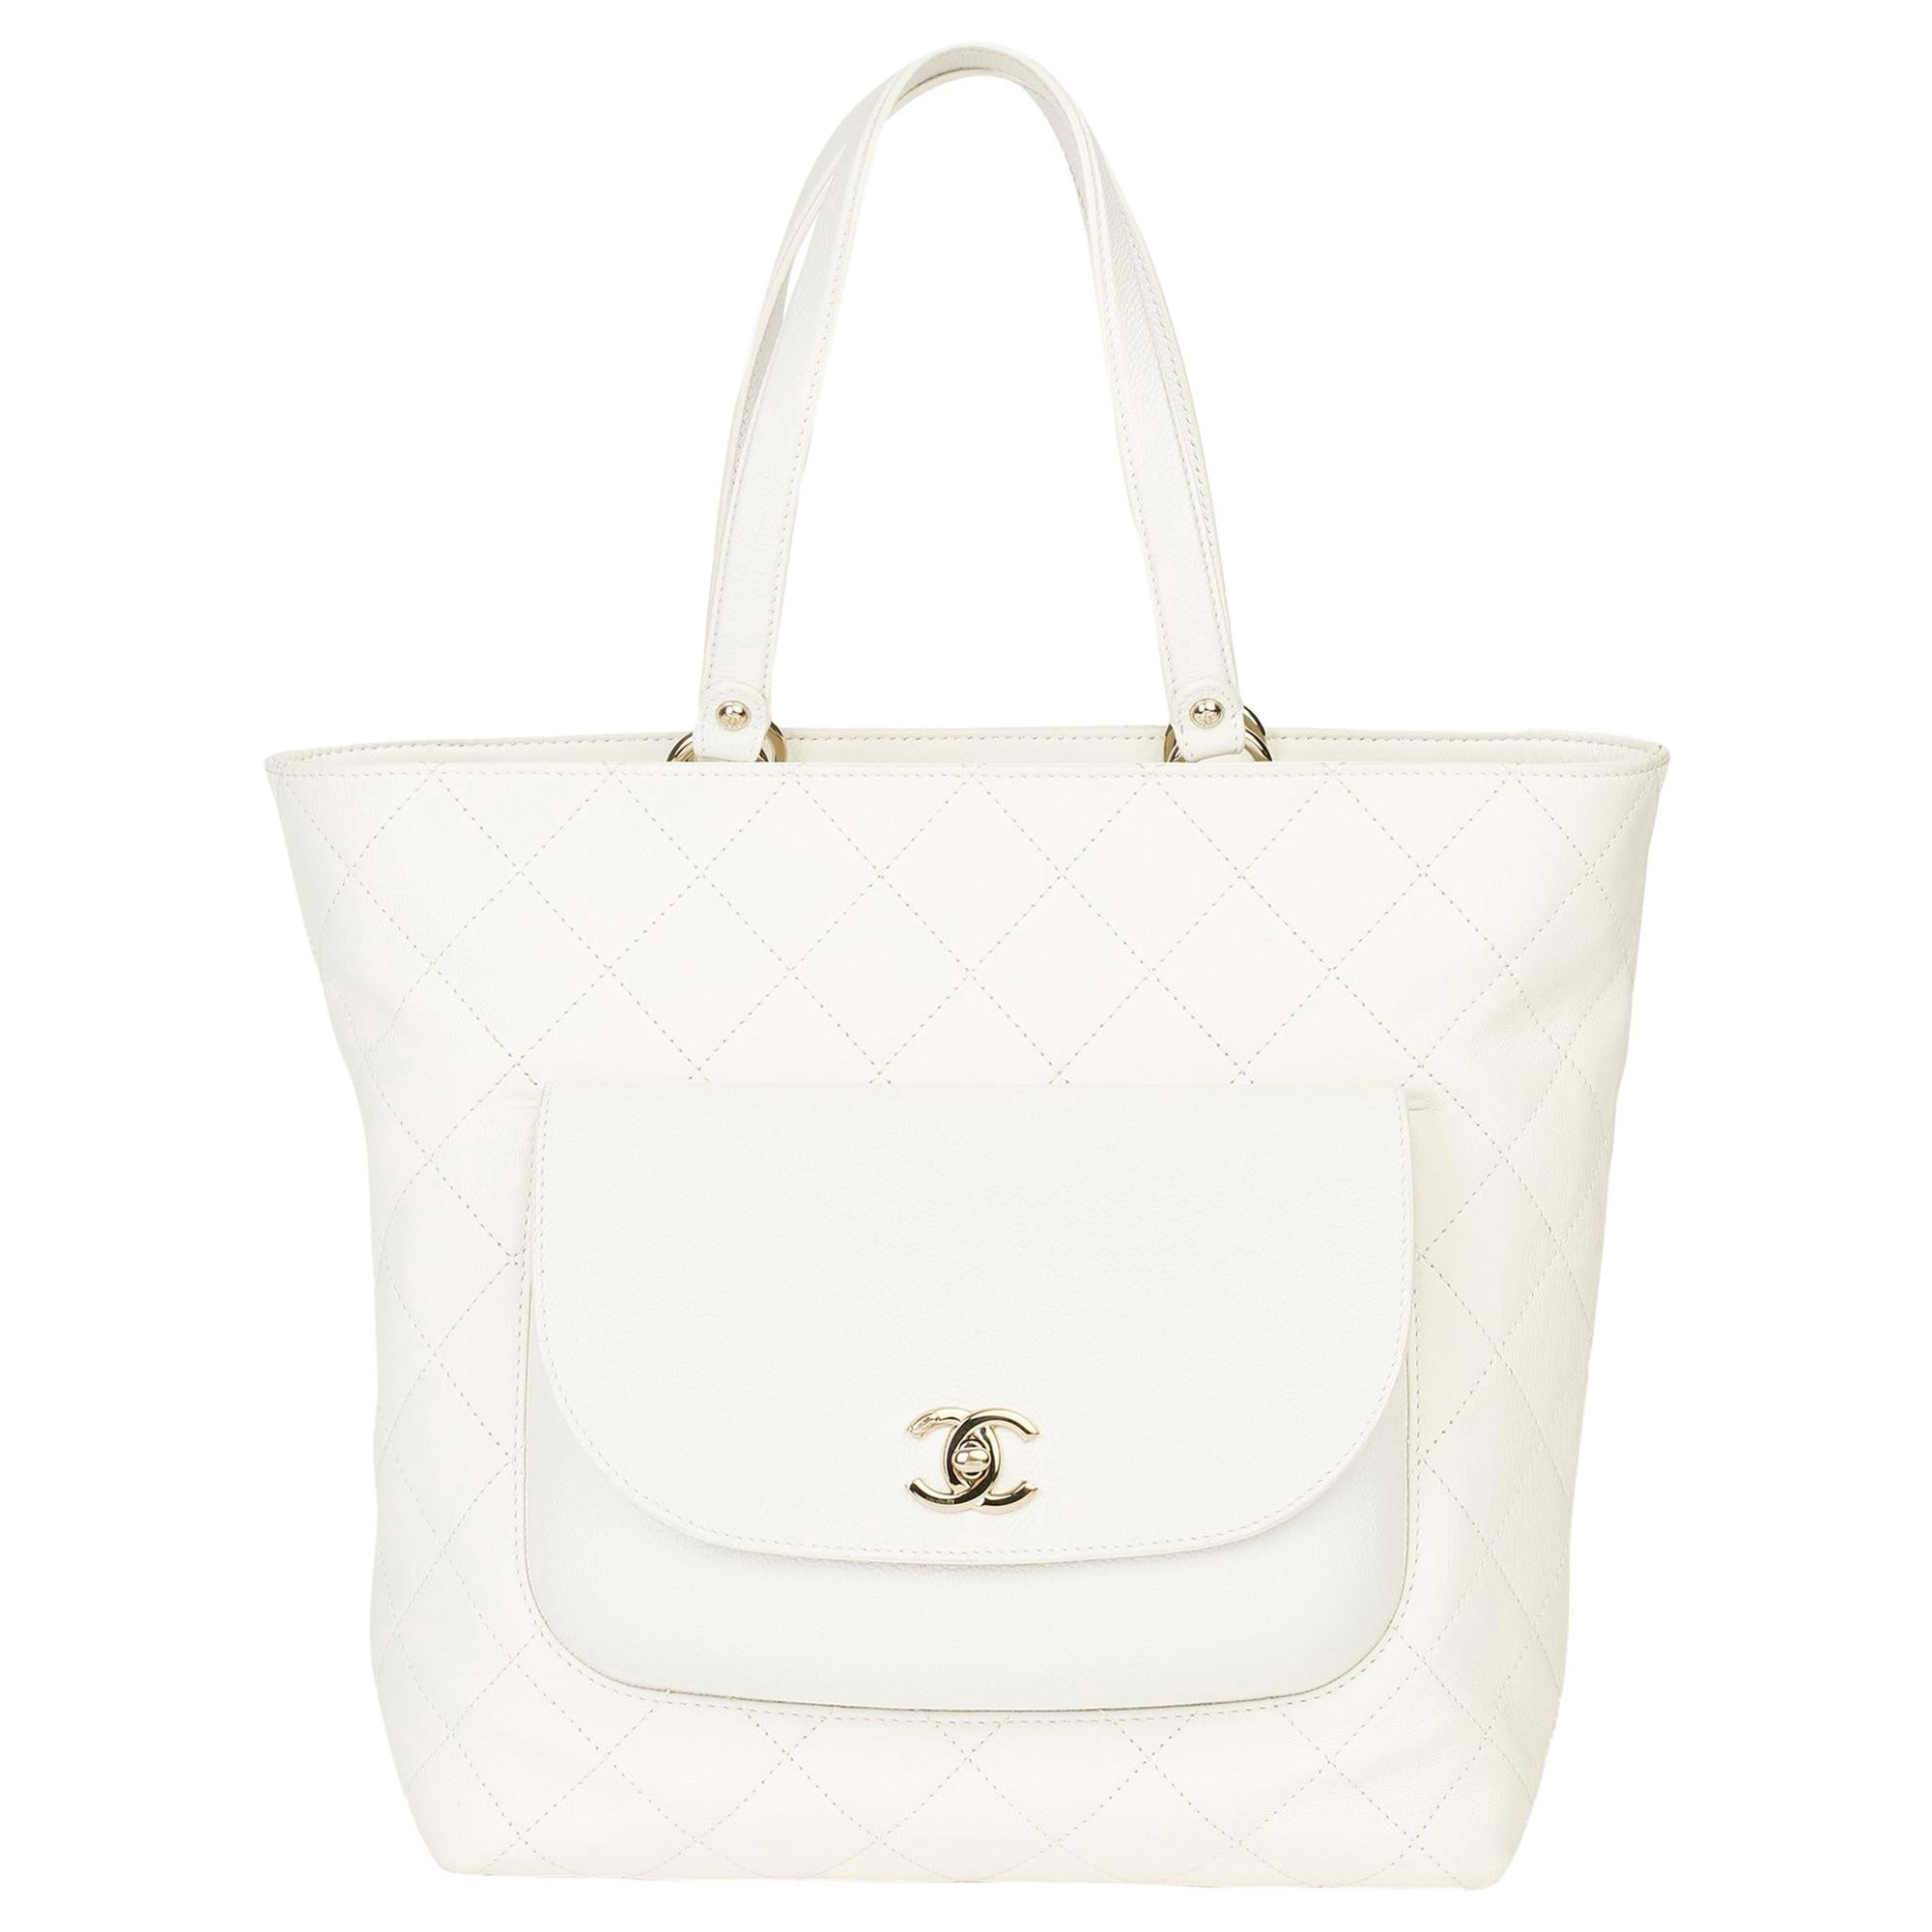 Chanel White Quilted Calfskin & Caviar Leather Classic Tote